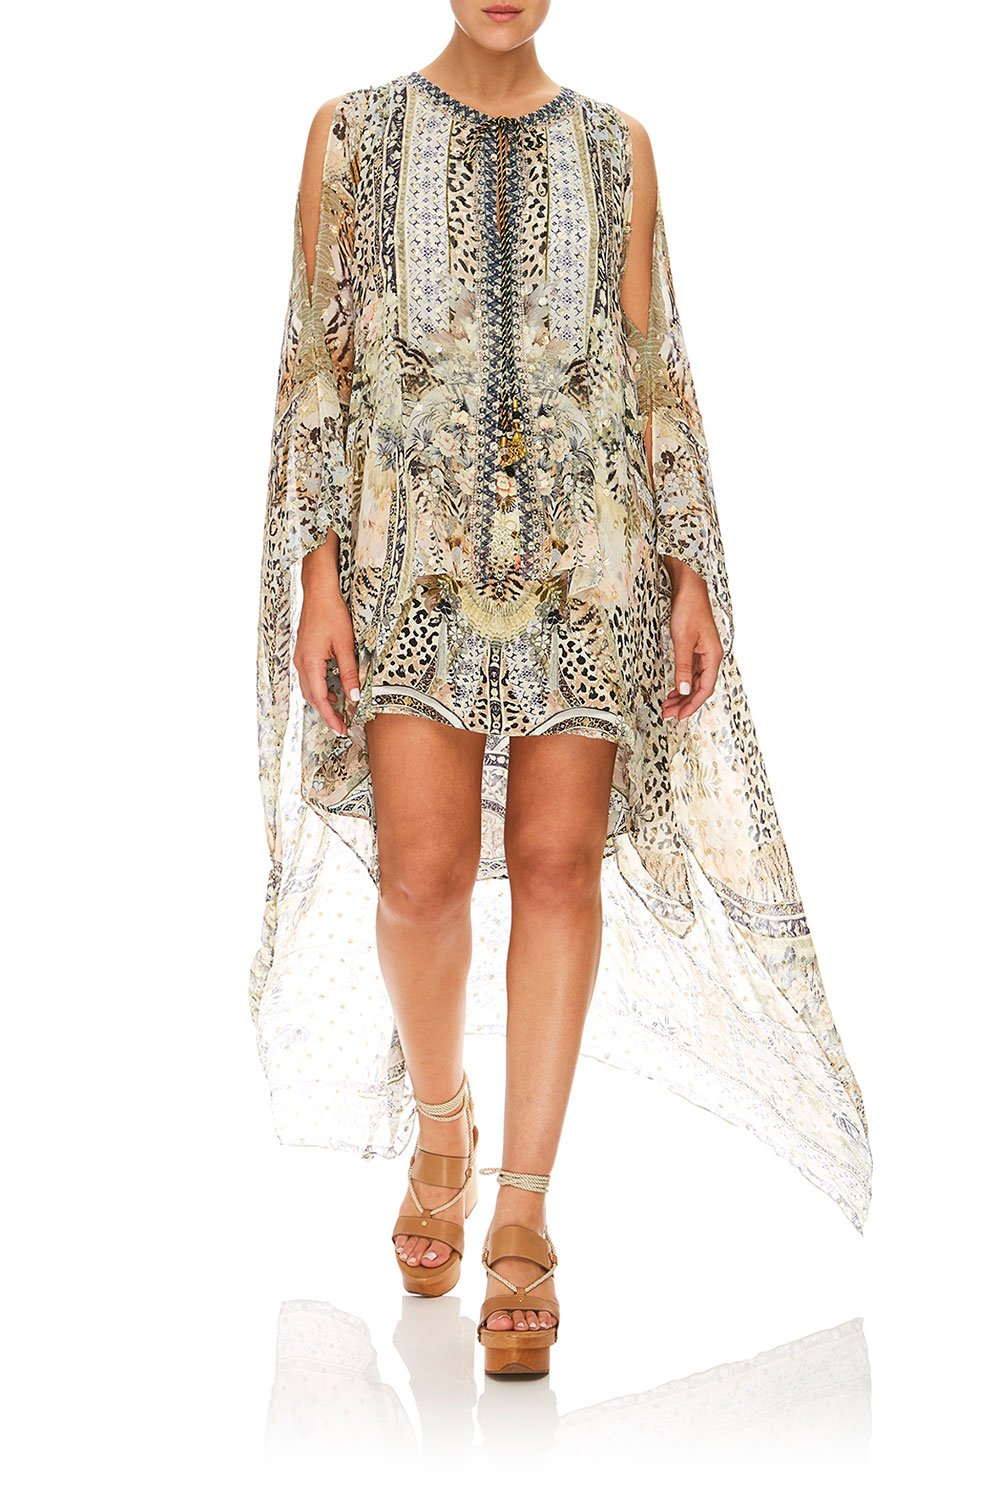 CAMILLA LONG SHEER OVERLAY DRESS MOTO MAIKO